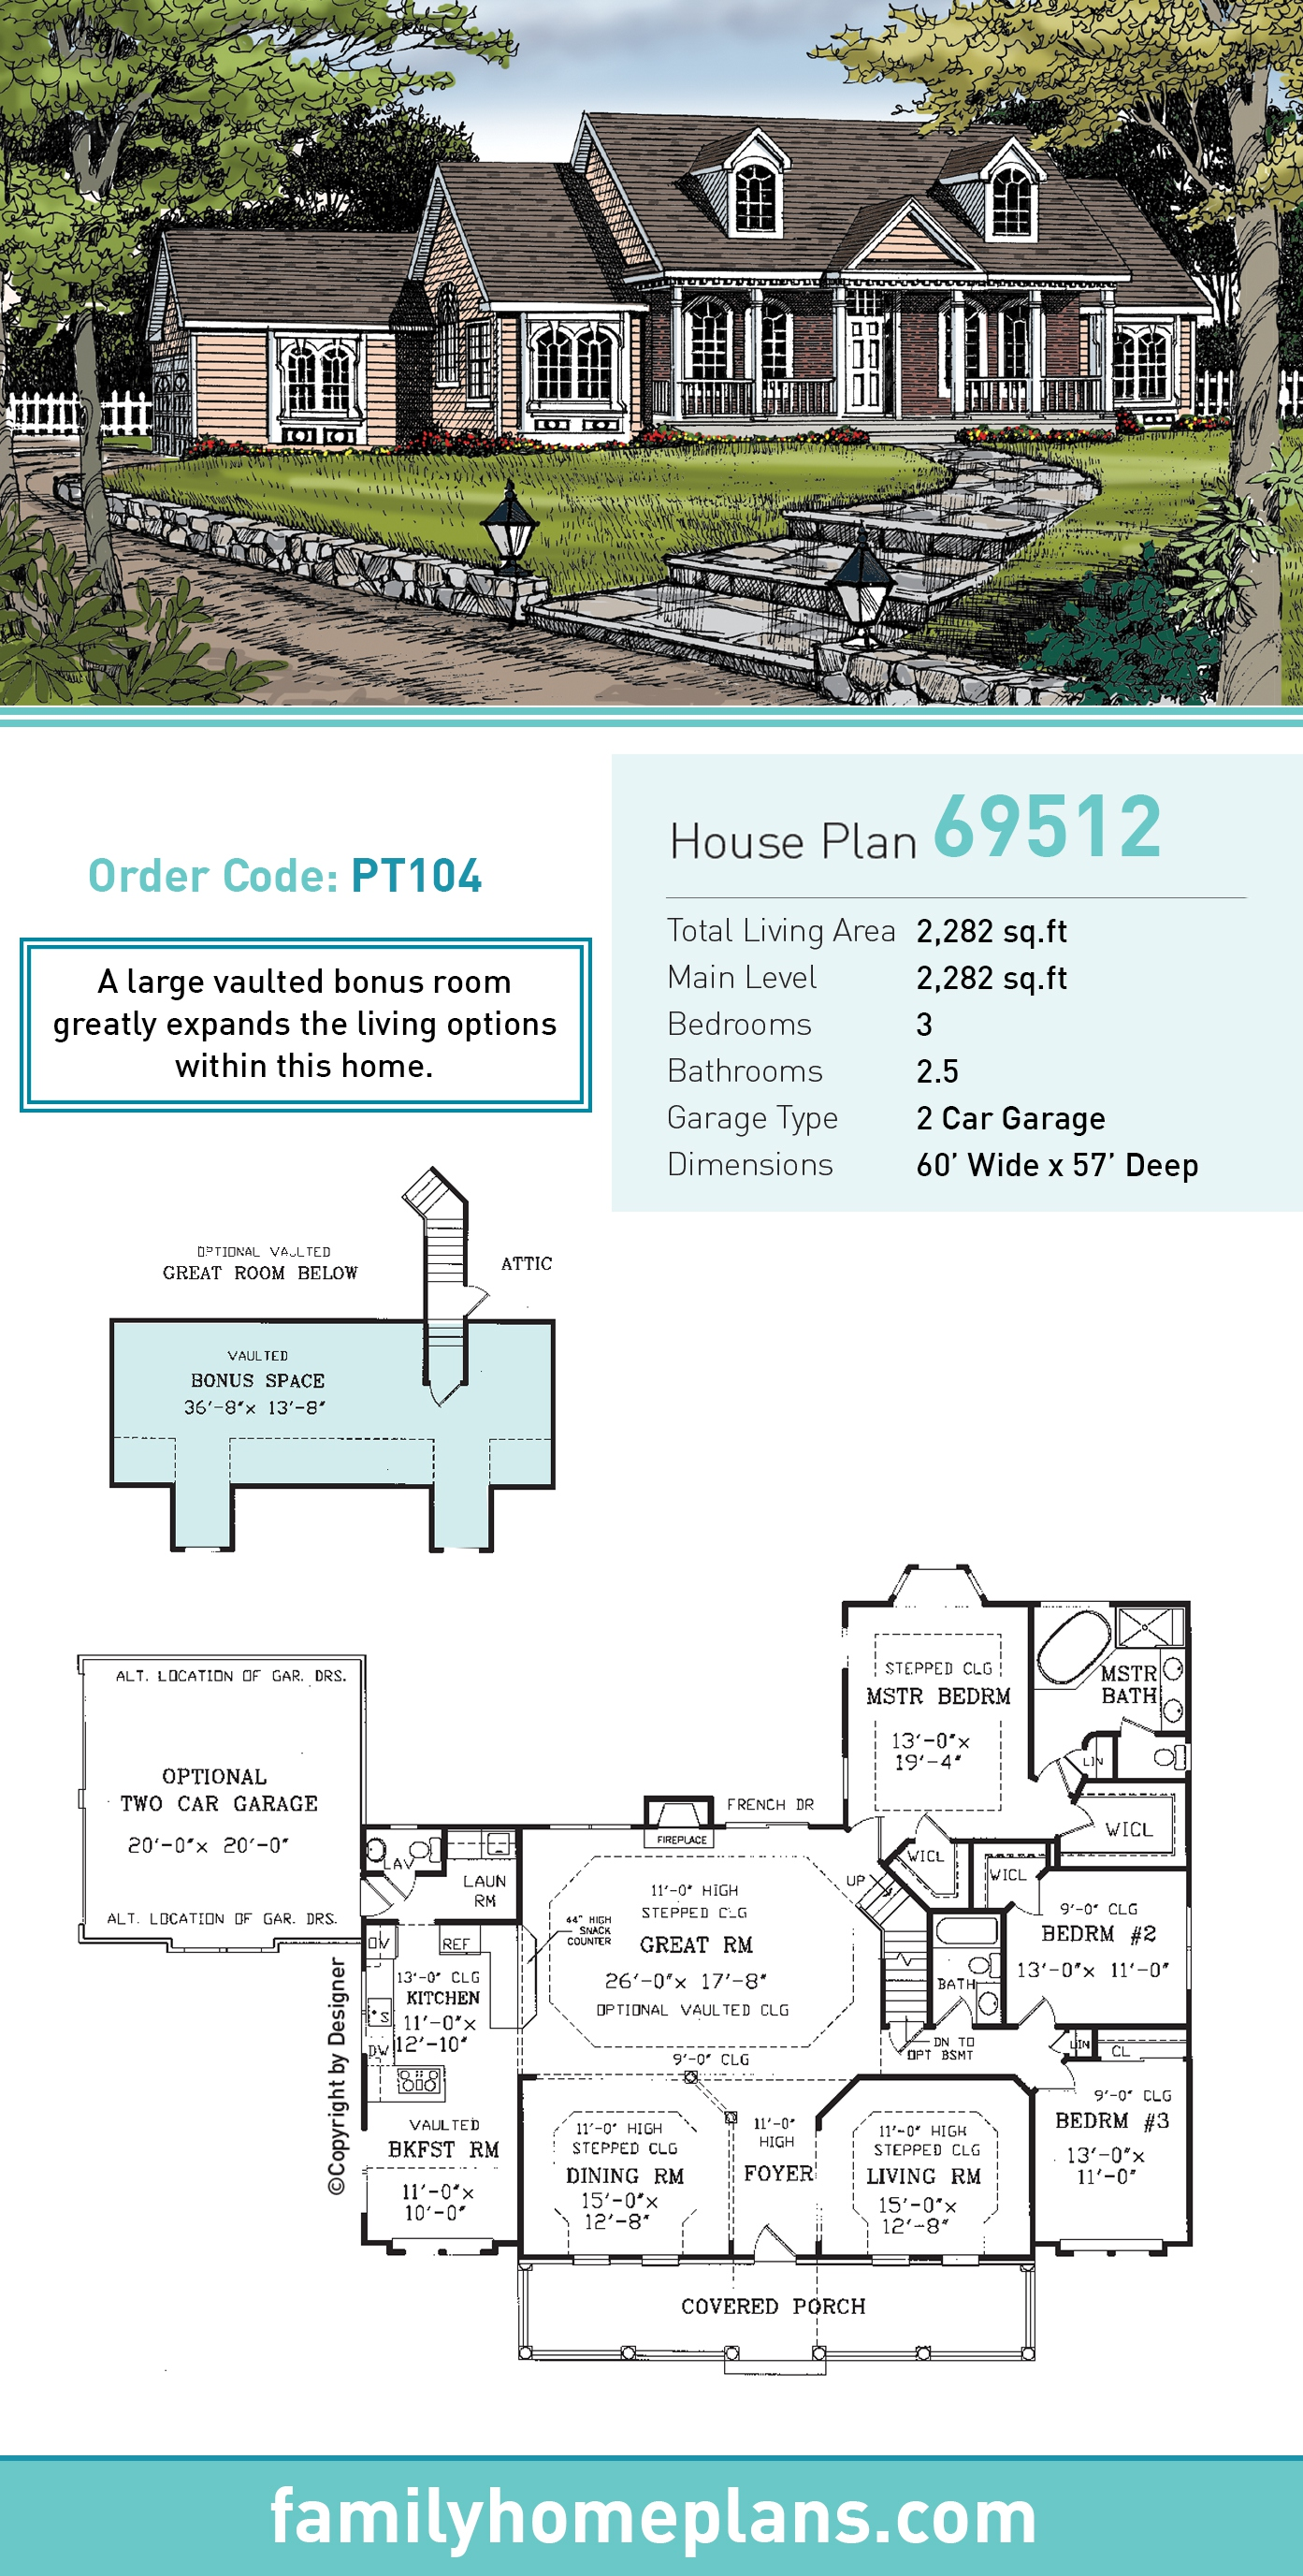 Cape Cod, Country House Plan 69512 with 3 Beds, 3 Baths, 2 Car Garage